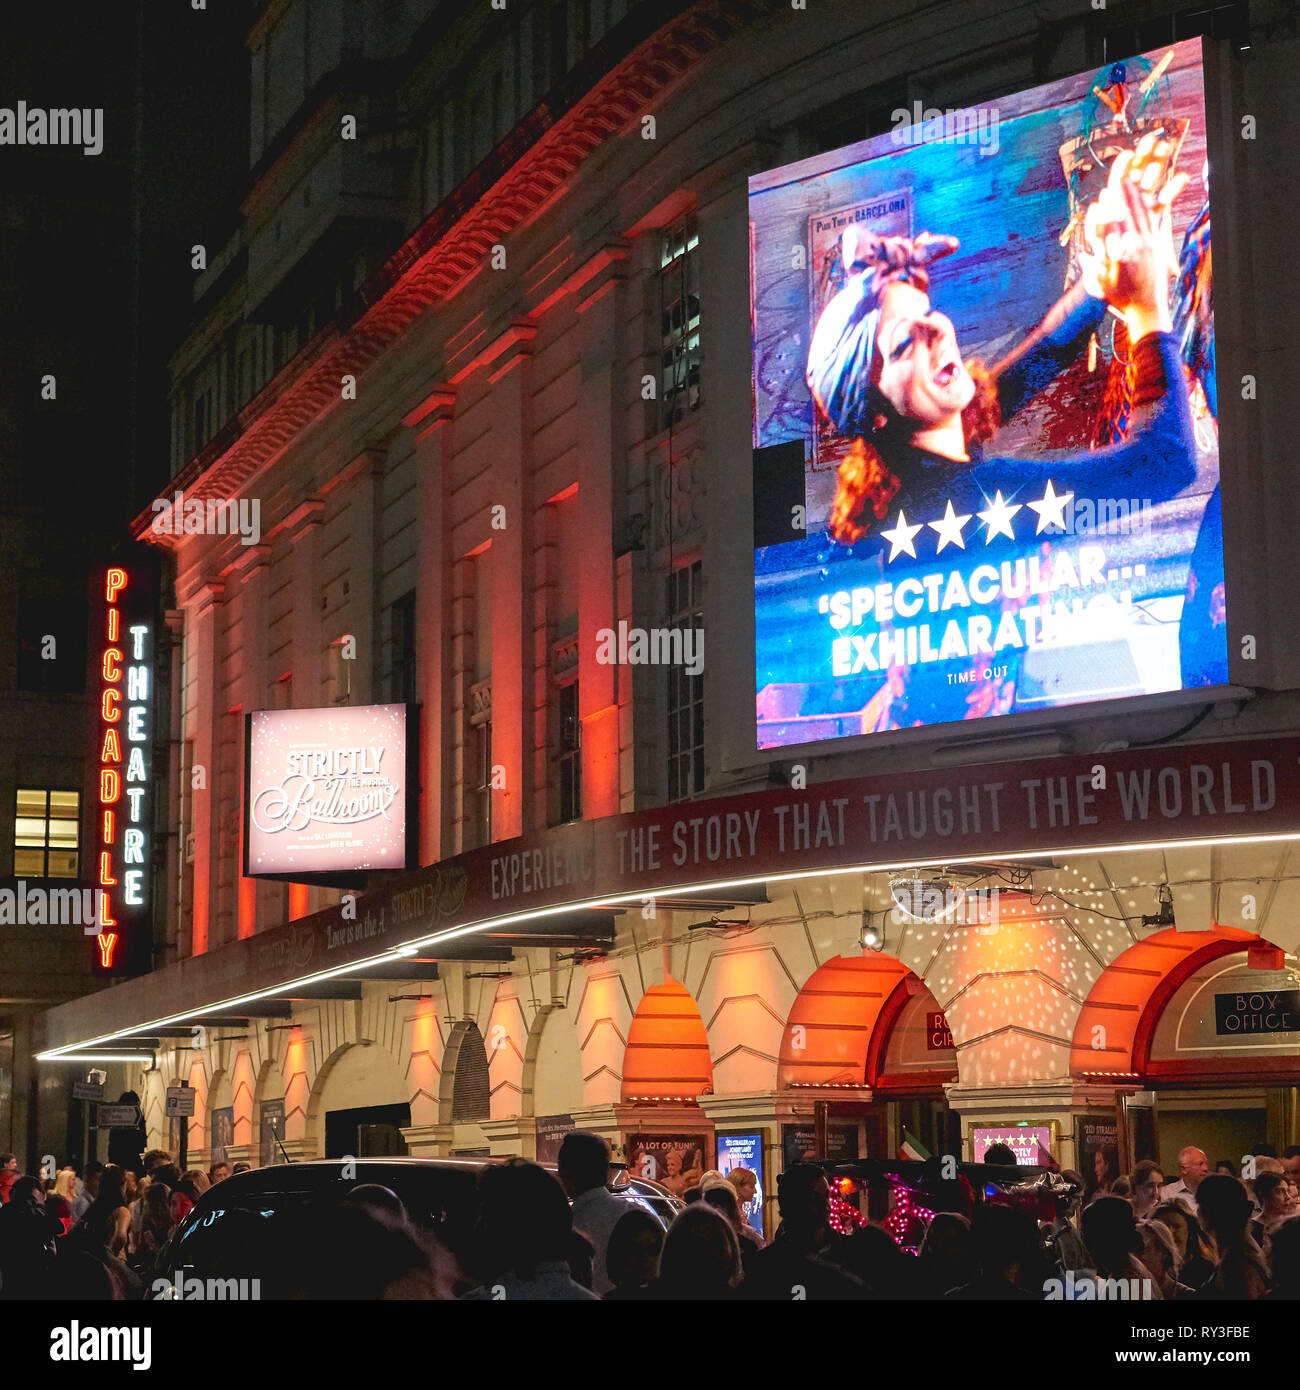 London, UK - August, 2018. Crowd of people outside the Piccadilly Theatre in London West End. - Stock Image